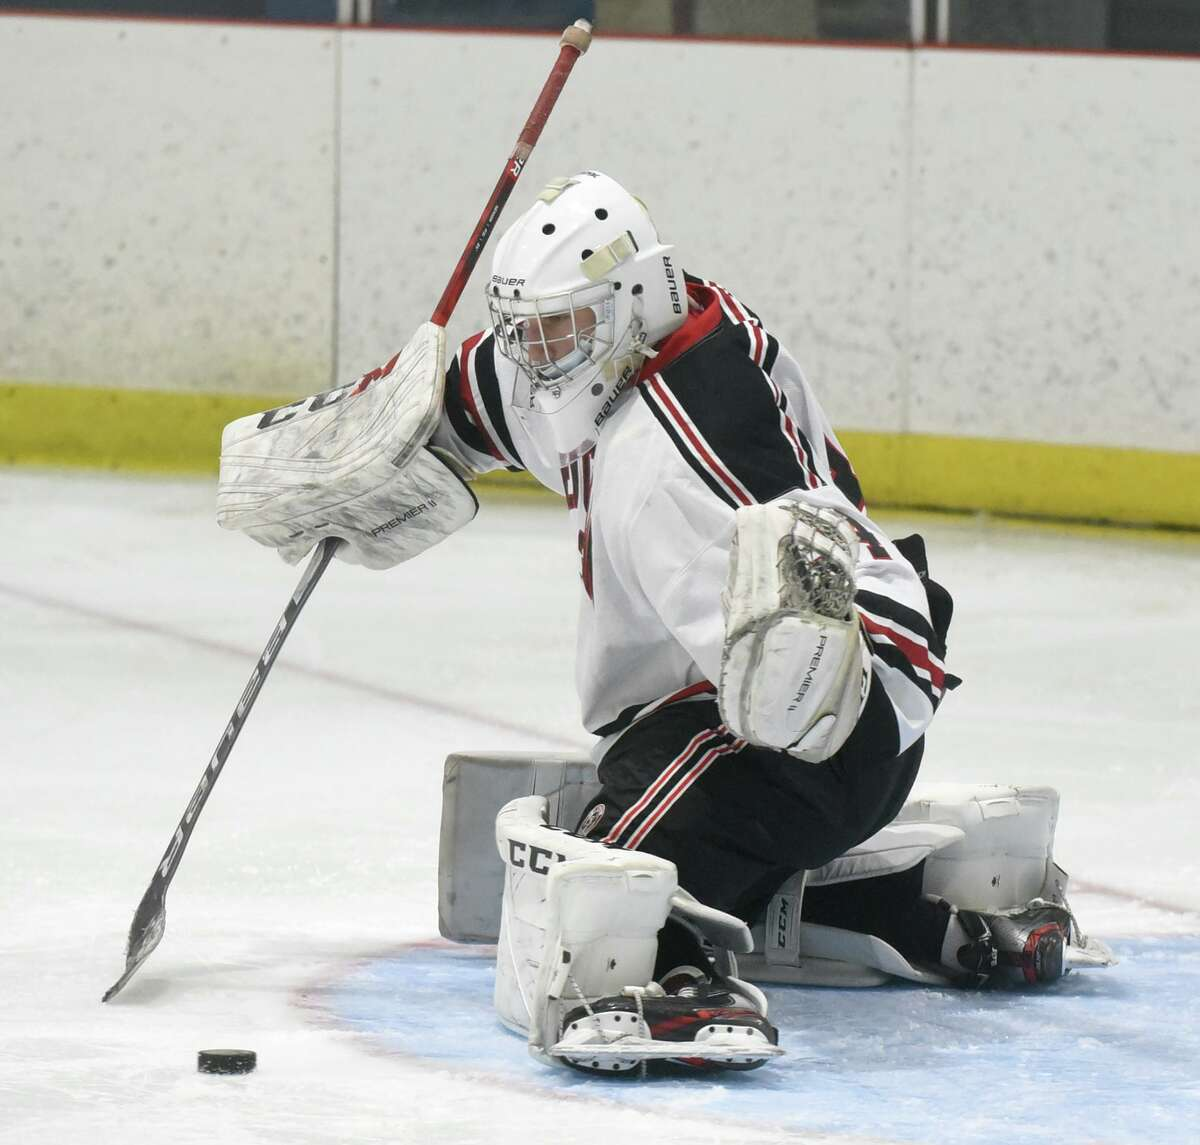 New Canaan goalie Beau Johnson makes a kick save during the Rams' boys ice hockey game against Ridgefield at the Darien Ice House on Saturday, Feb. 13, 2021.